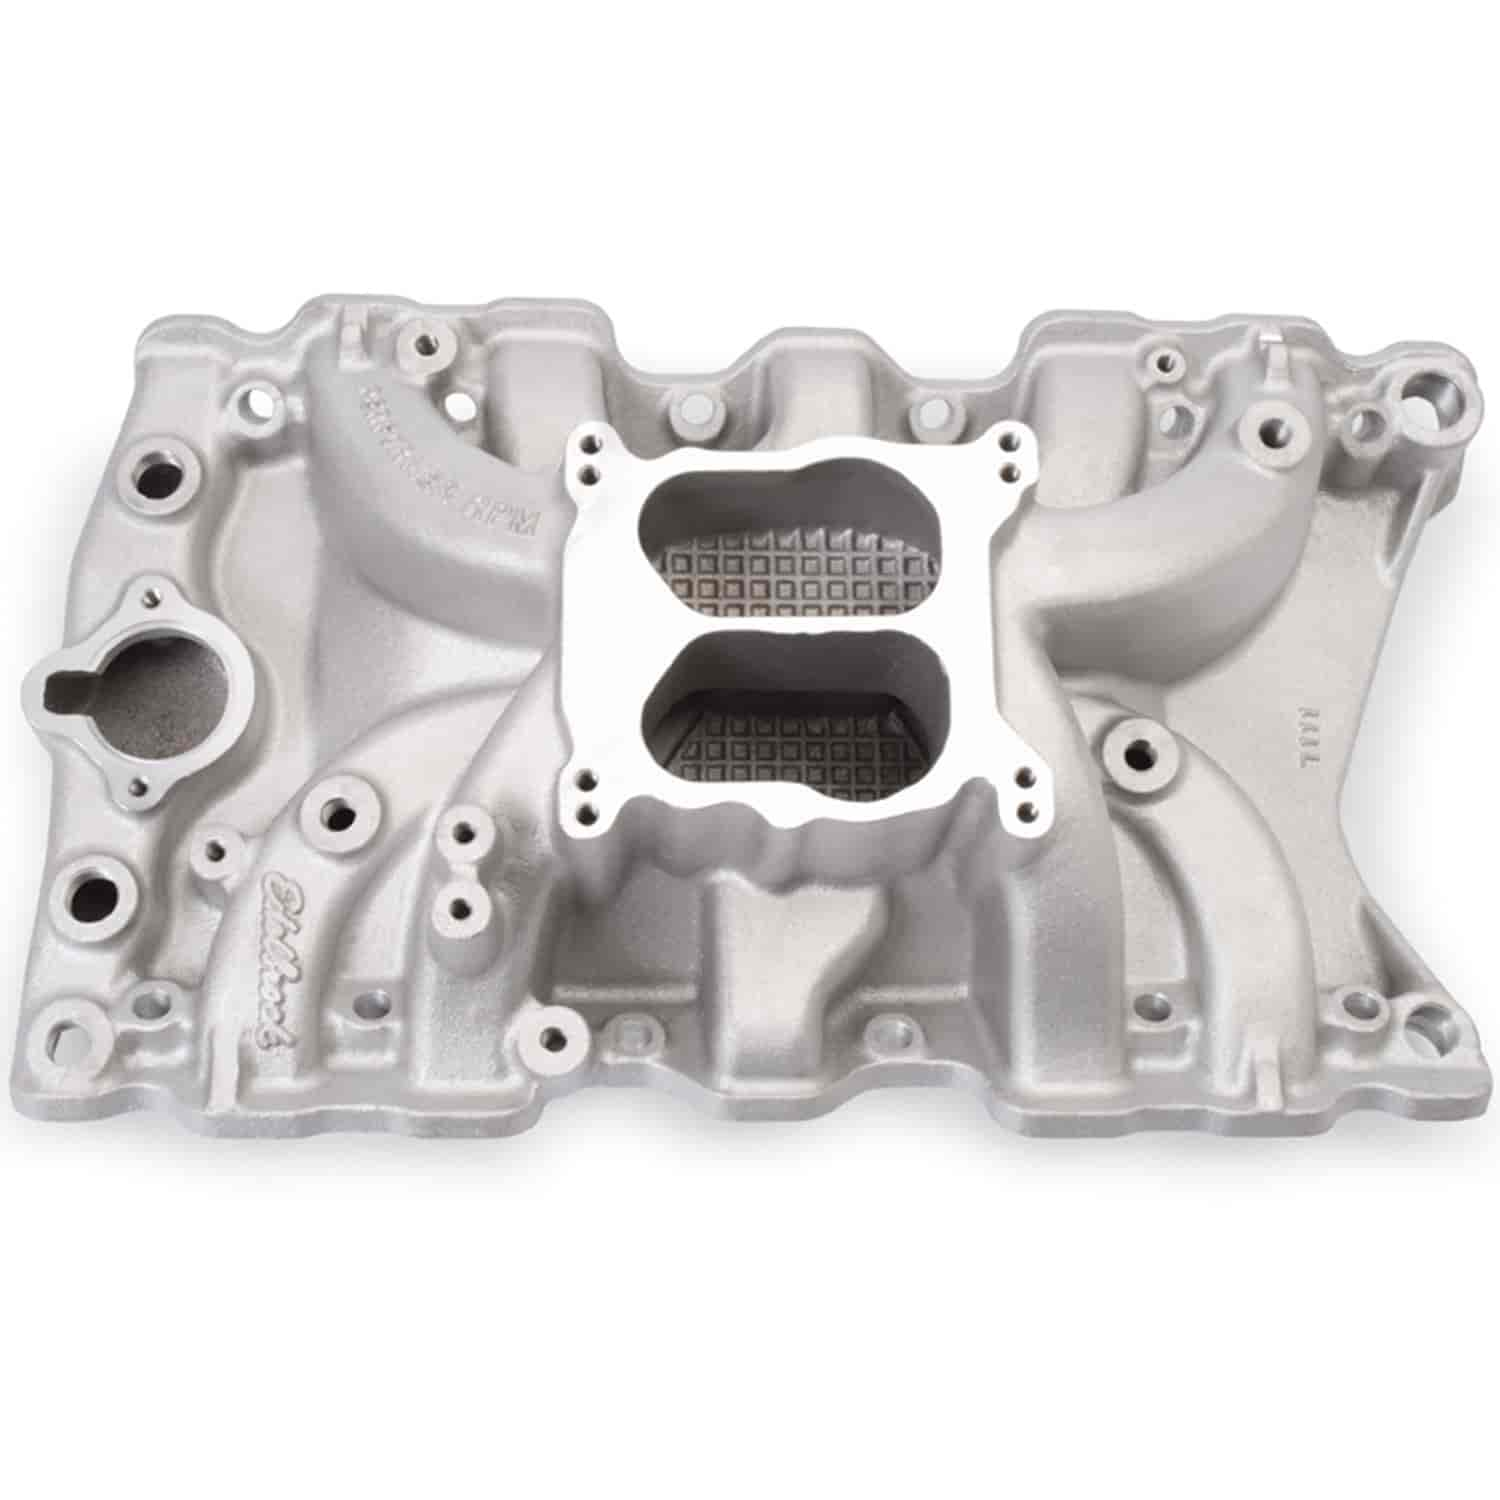 Edelbrock 7111 - Edelbrock Performer RPM Manifolds & Kits for Olds